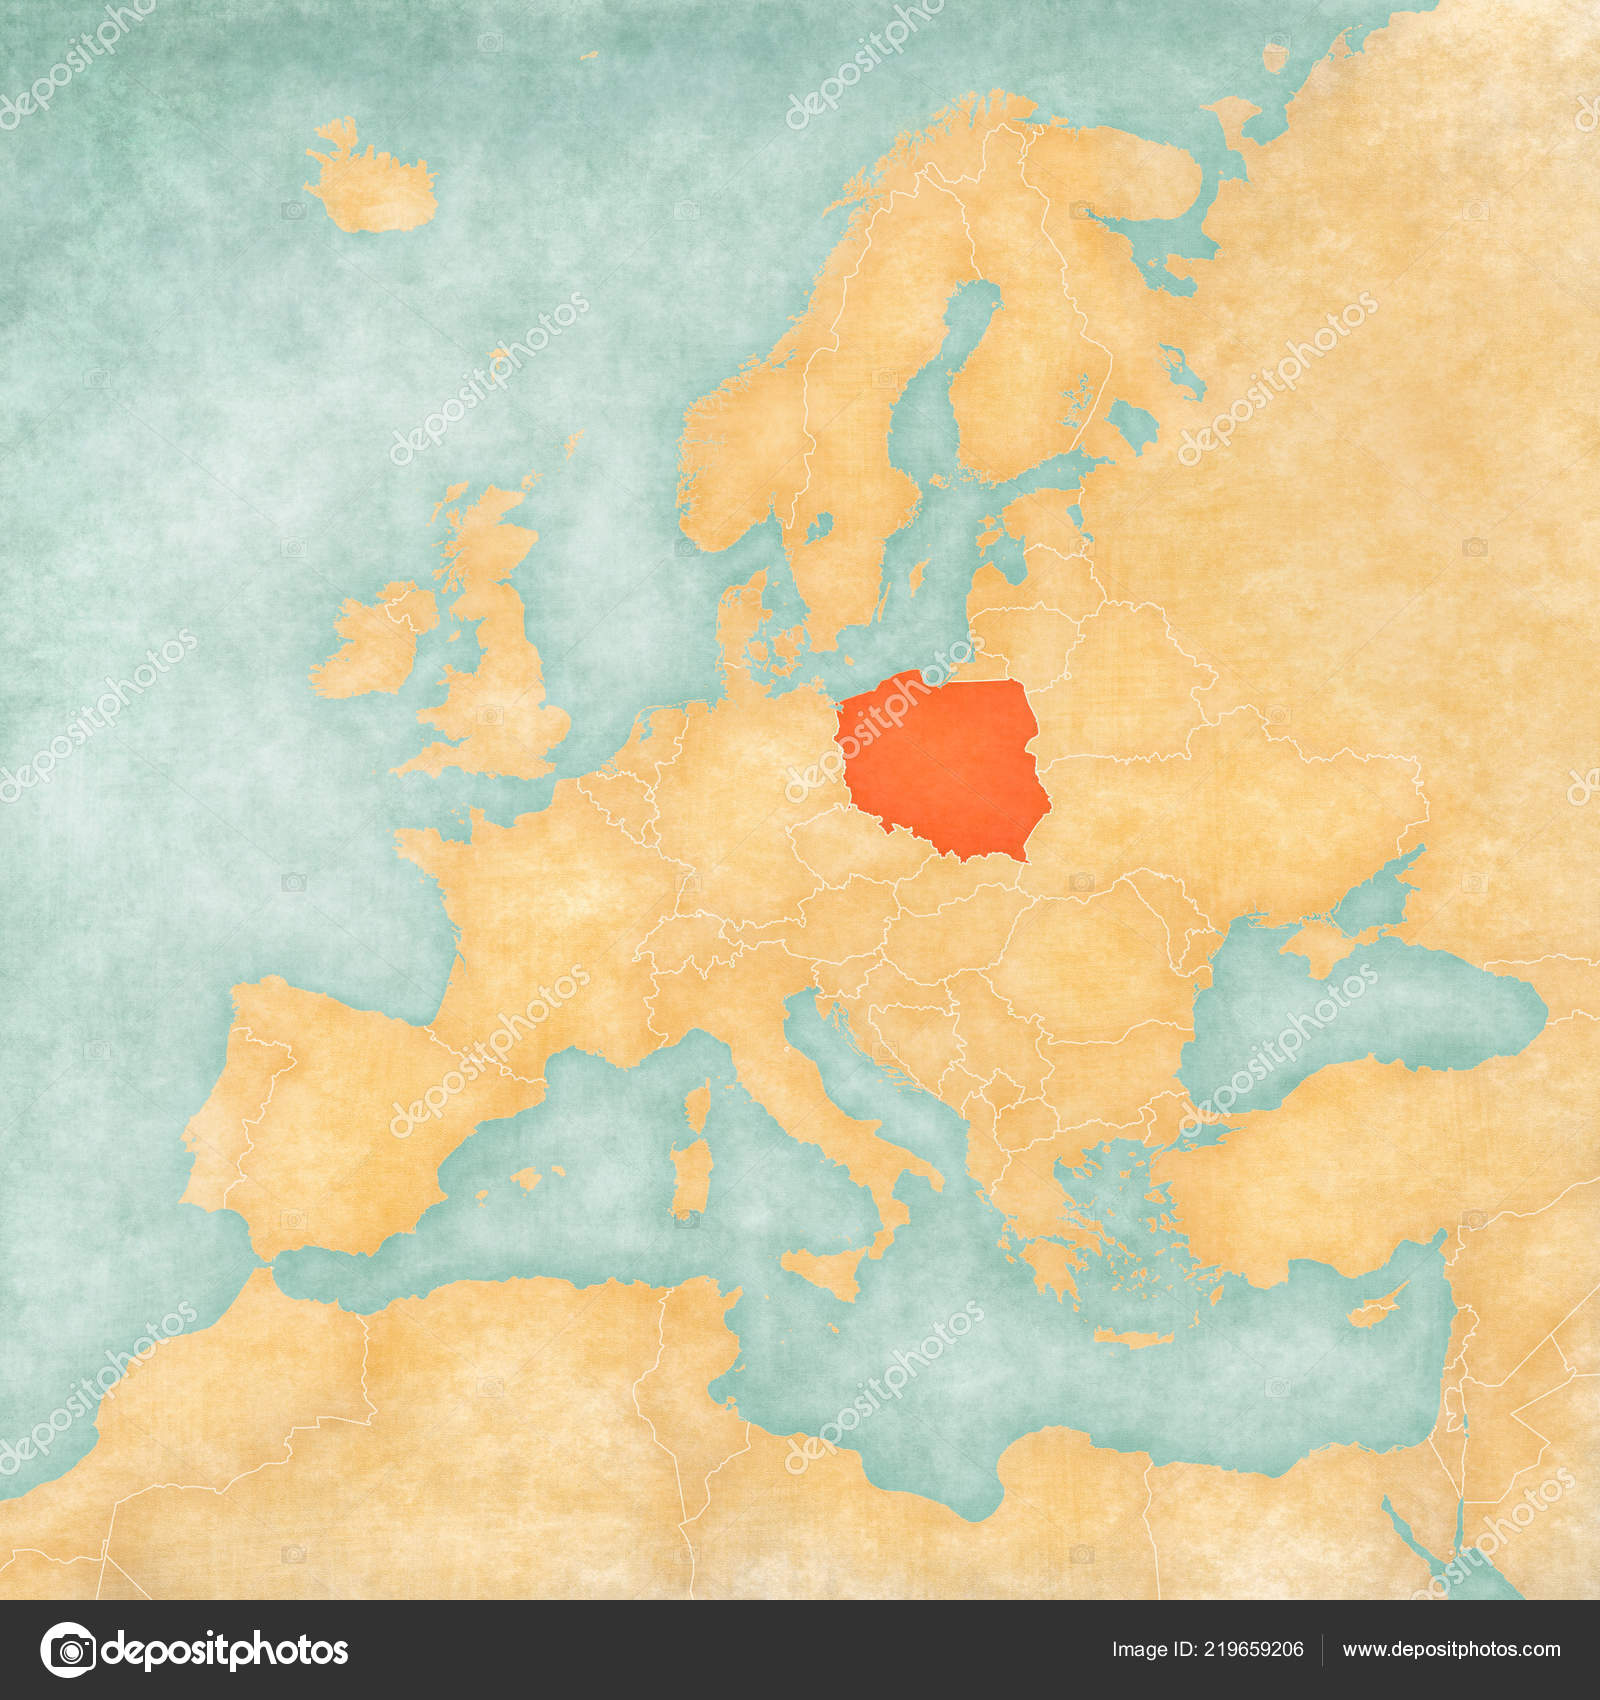 Poland Map Europe Soft Grunge Vintage Style Old Paper Watercolor ...